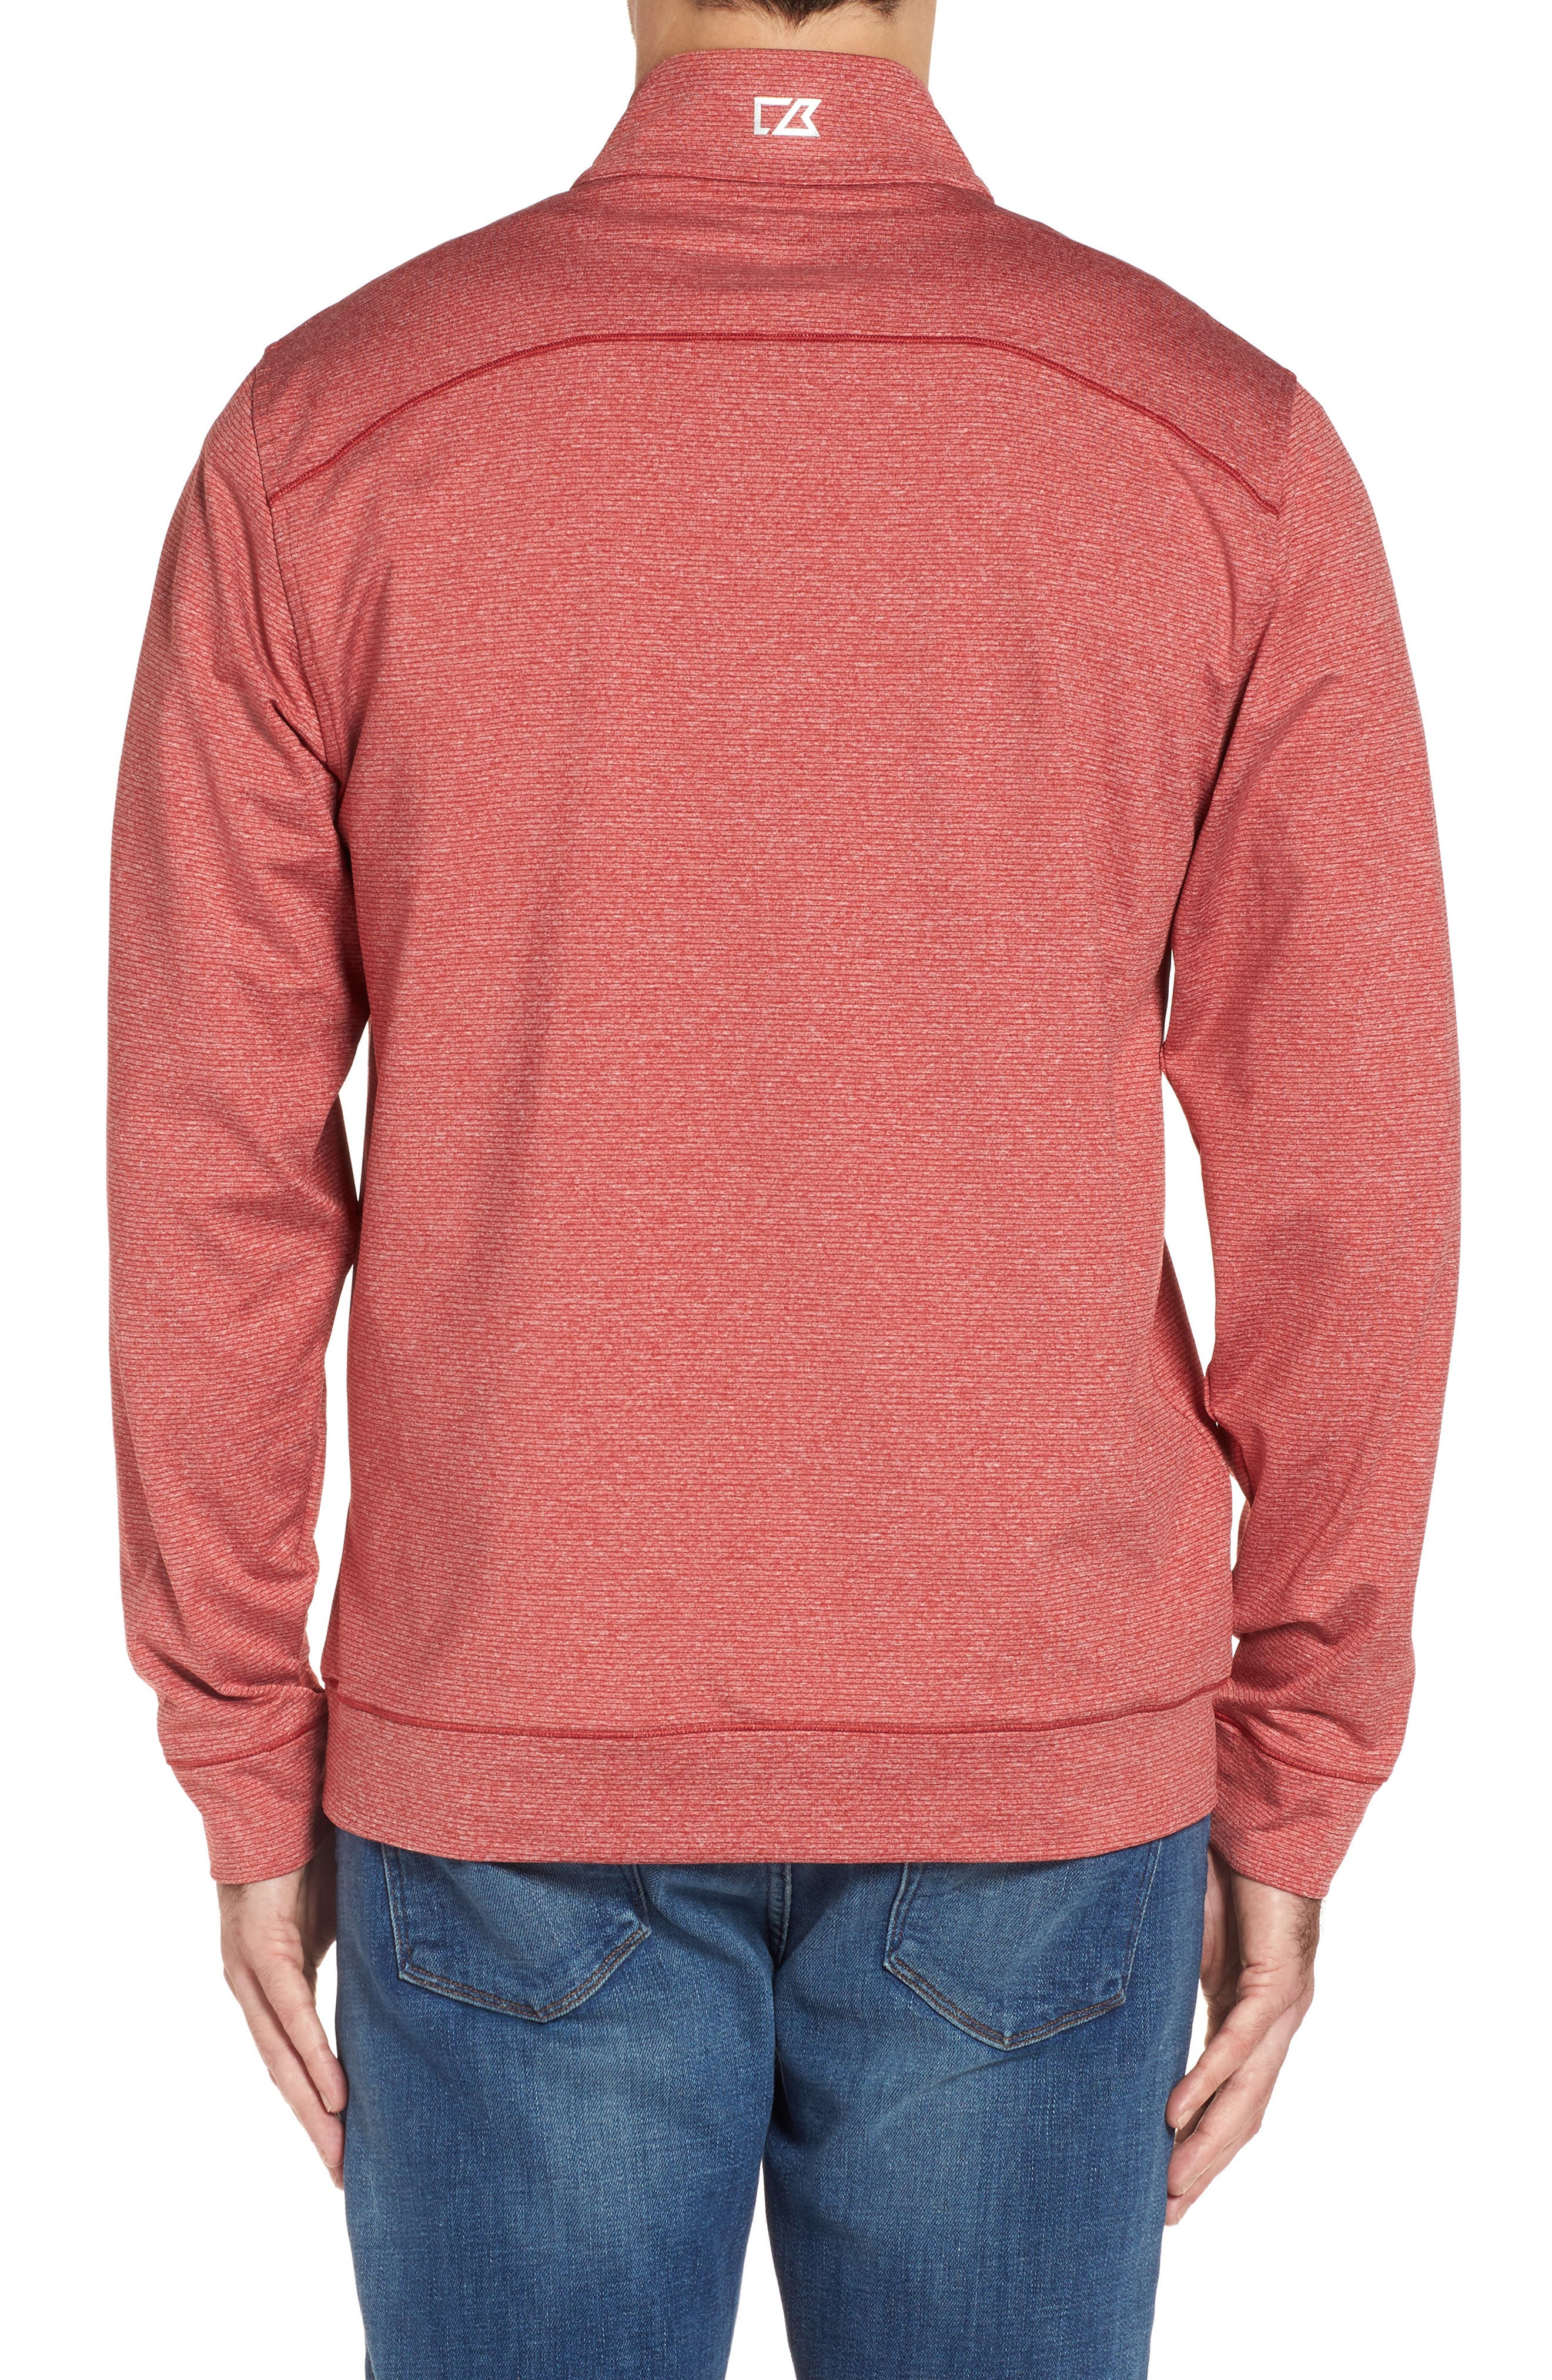 Shoreline - San Francisco 49ers Half Zip Pullover,                             Alternate thumbnail 2, color,                             Cardinal Red Heather